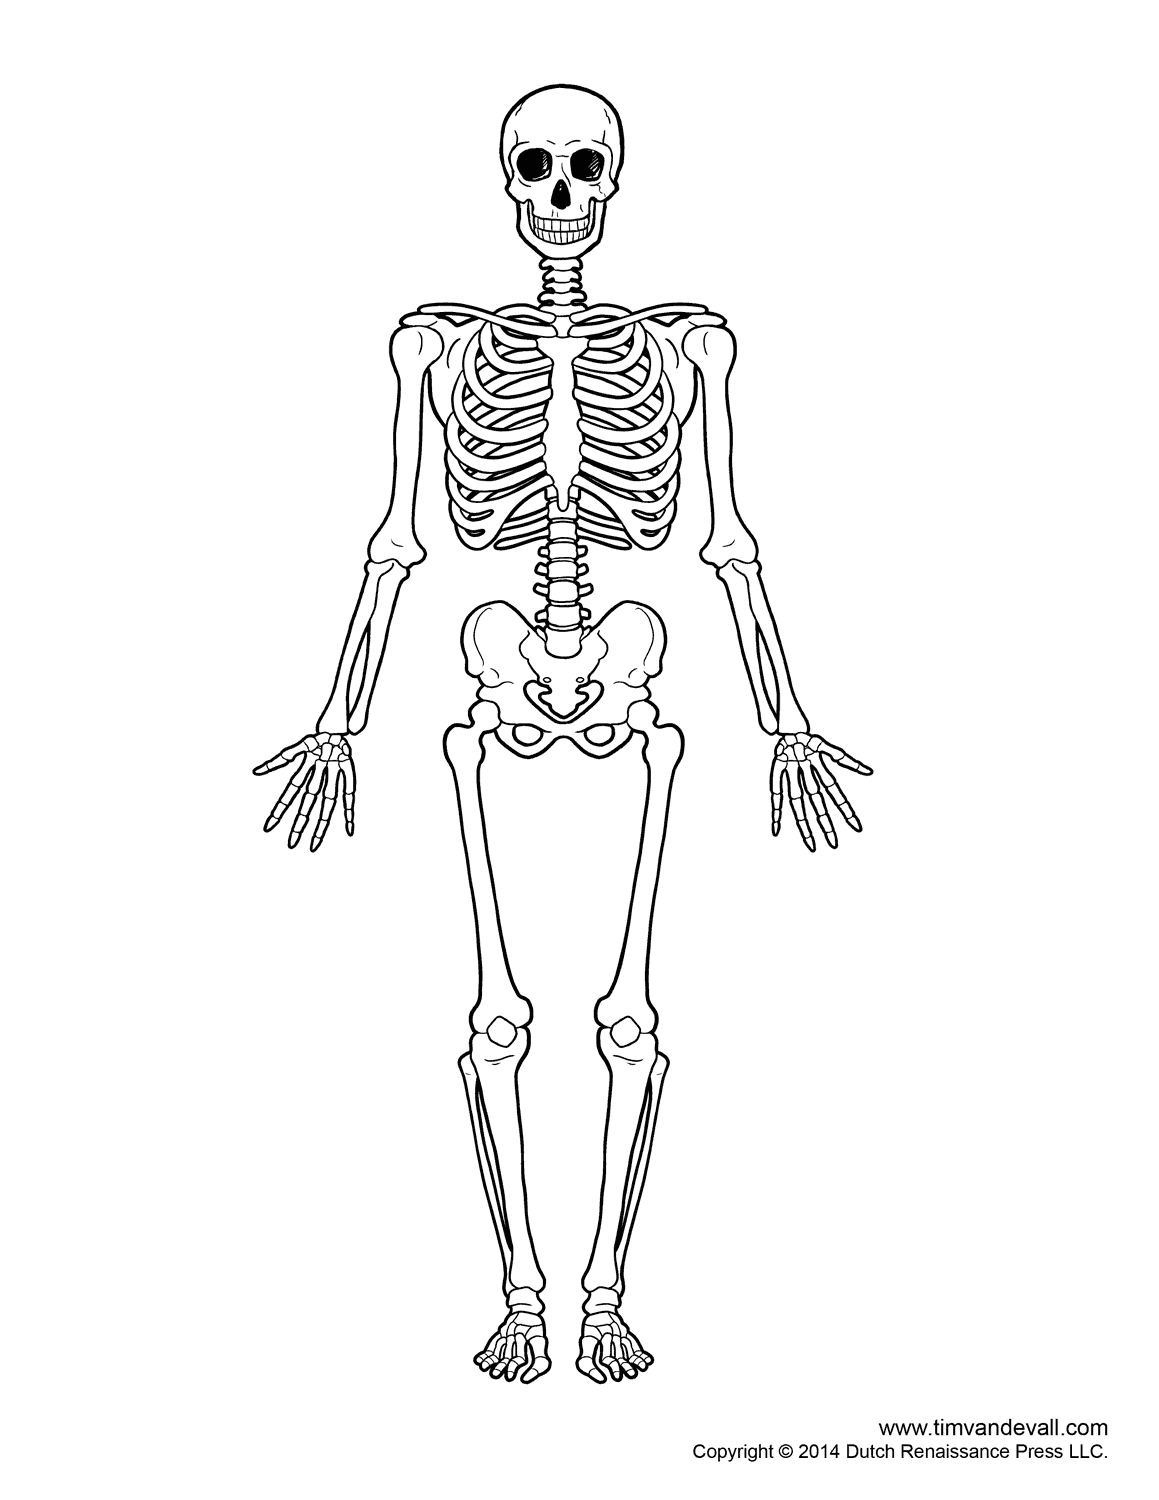 Printable Human Skeleton Diagram - Labeled, Unlabeled, and ...